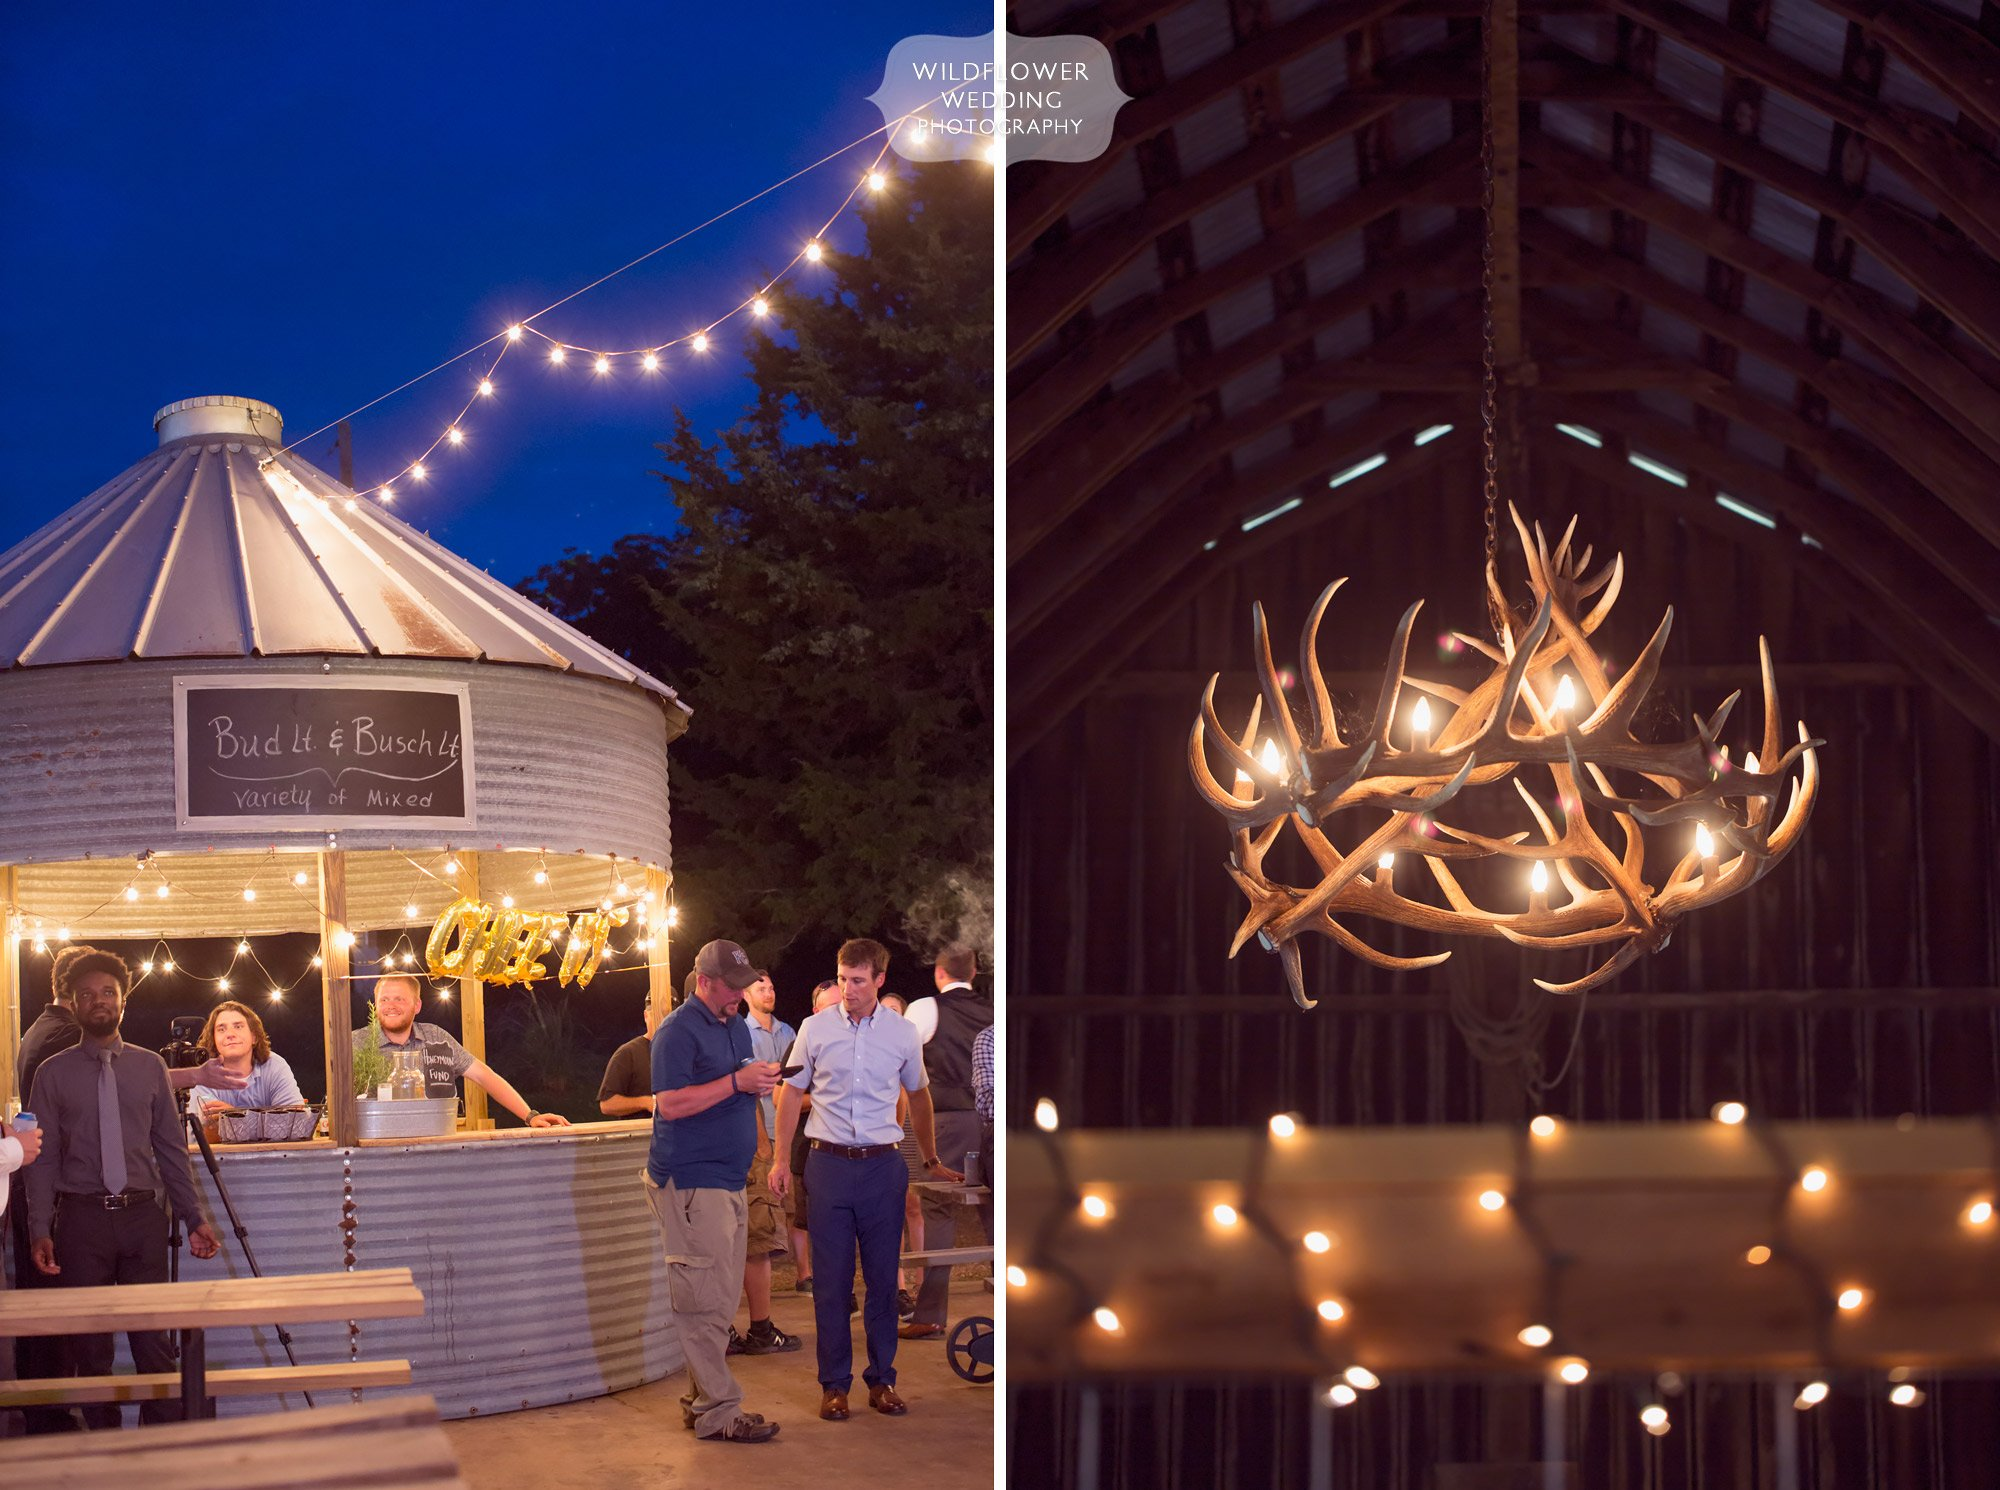 Twinkle lights and an antler chandelier at this country wedding venue in southern MO made for amazing wedding photos!